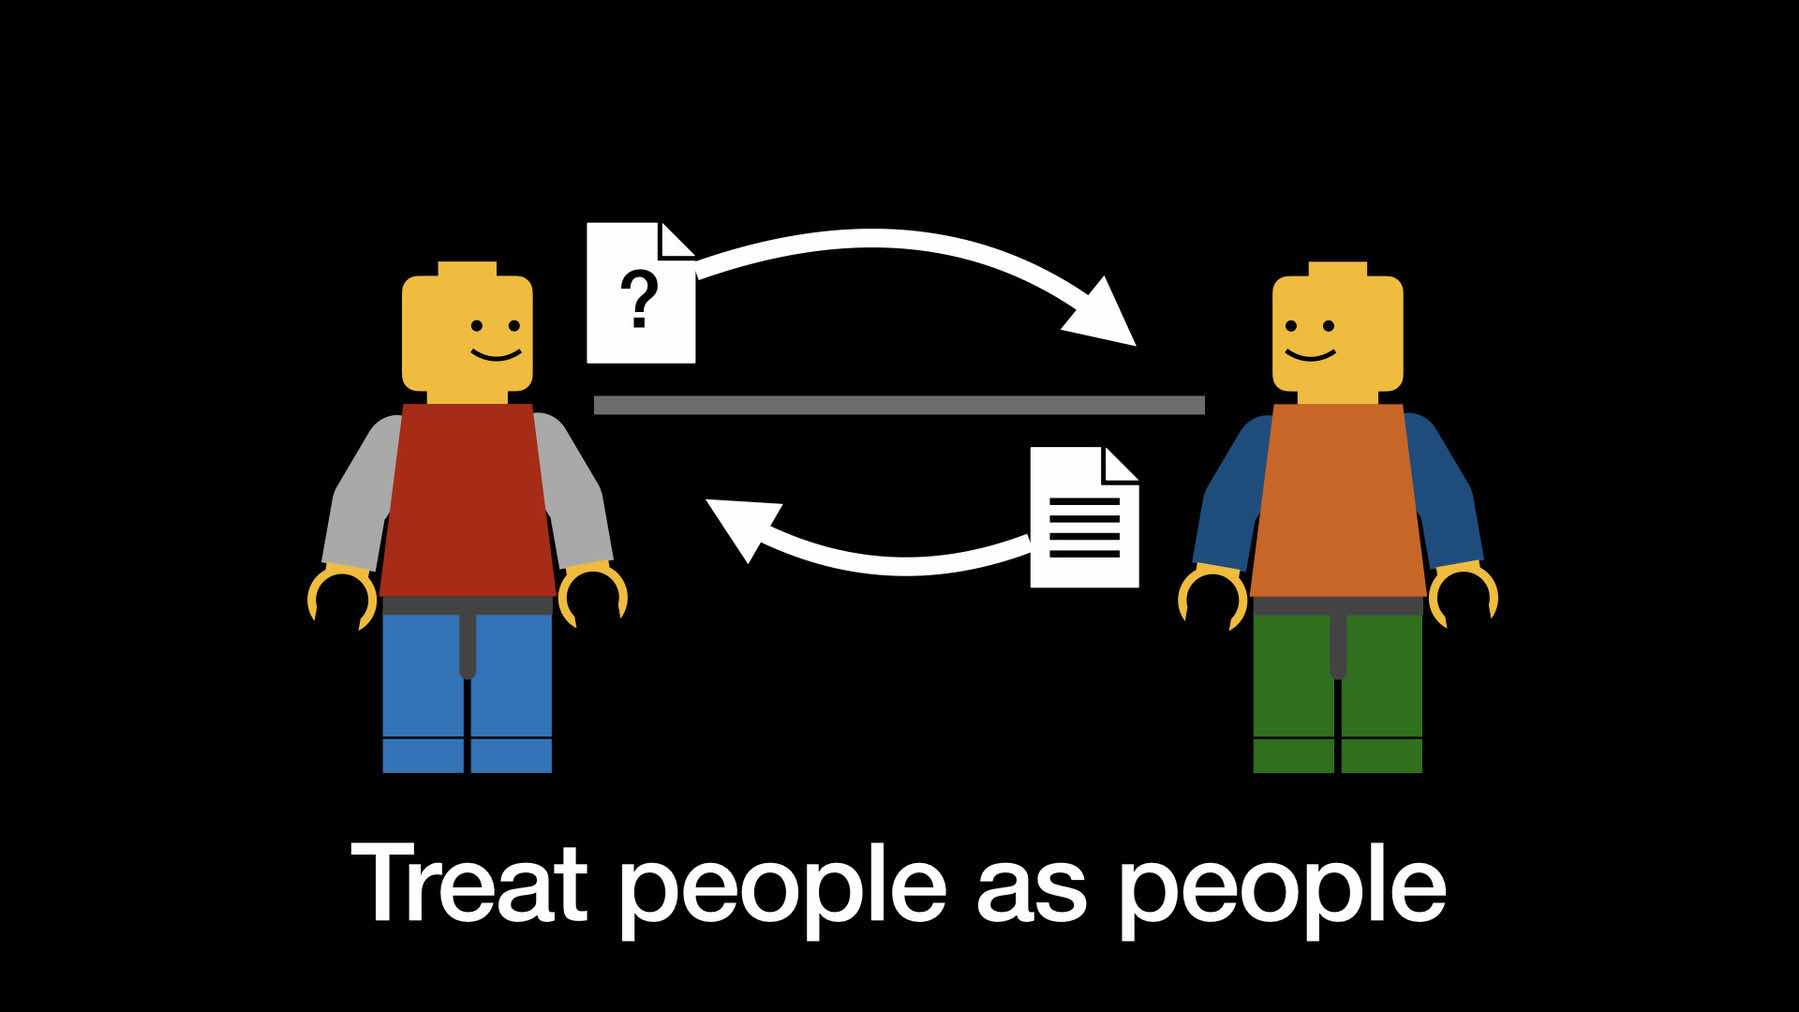 Lego characters communicating asynchronously